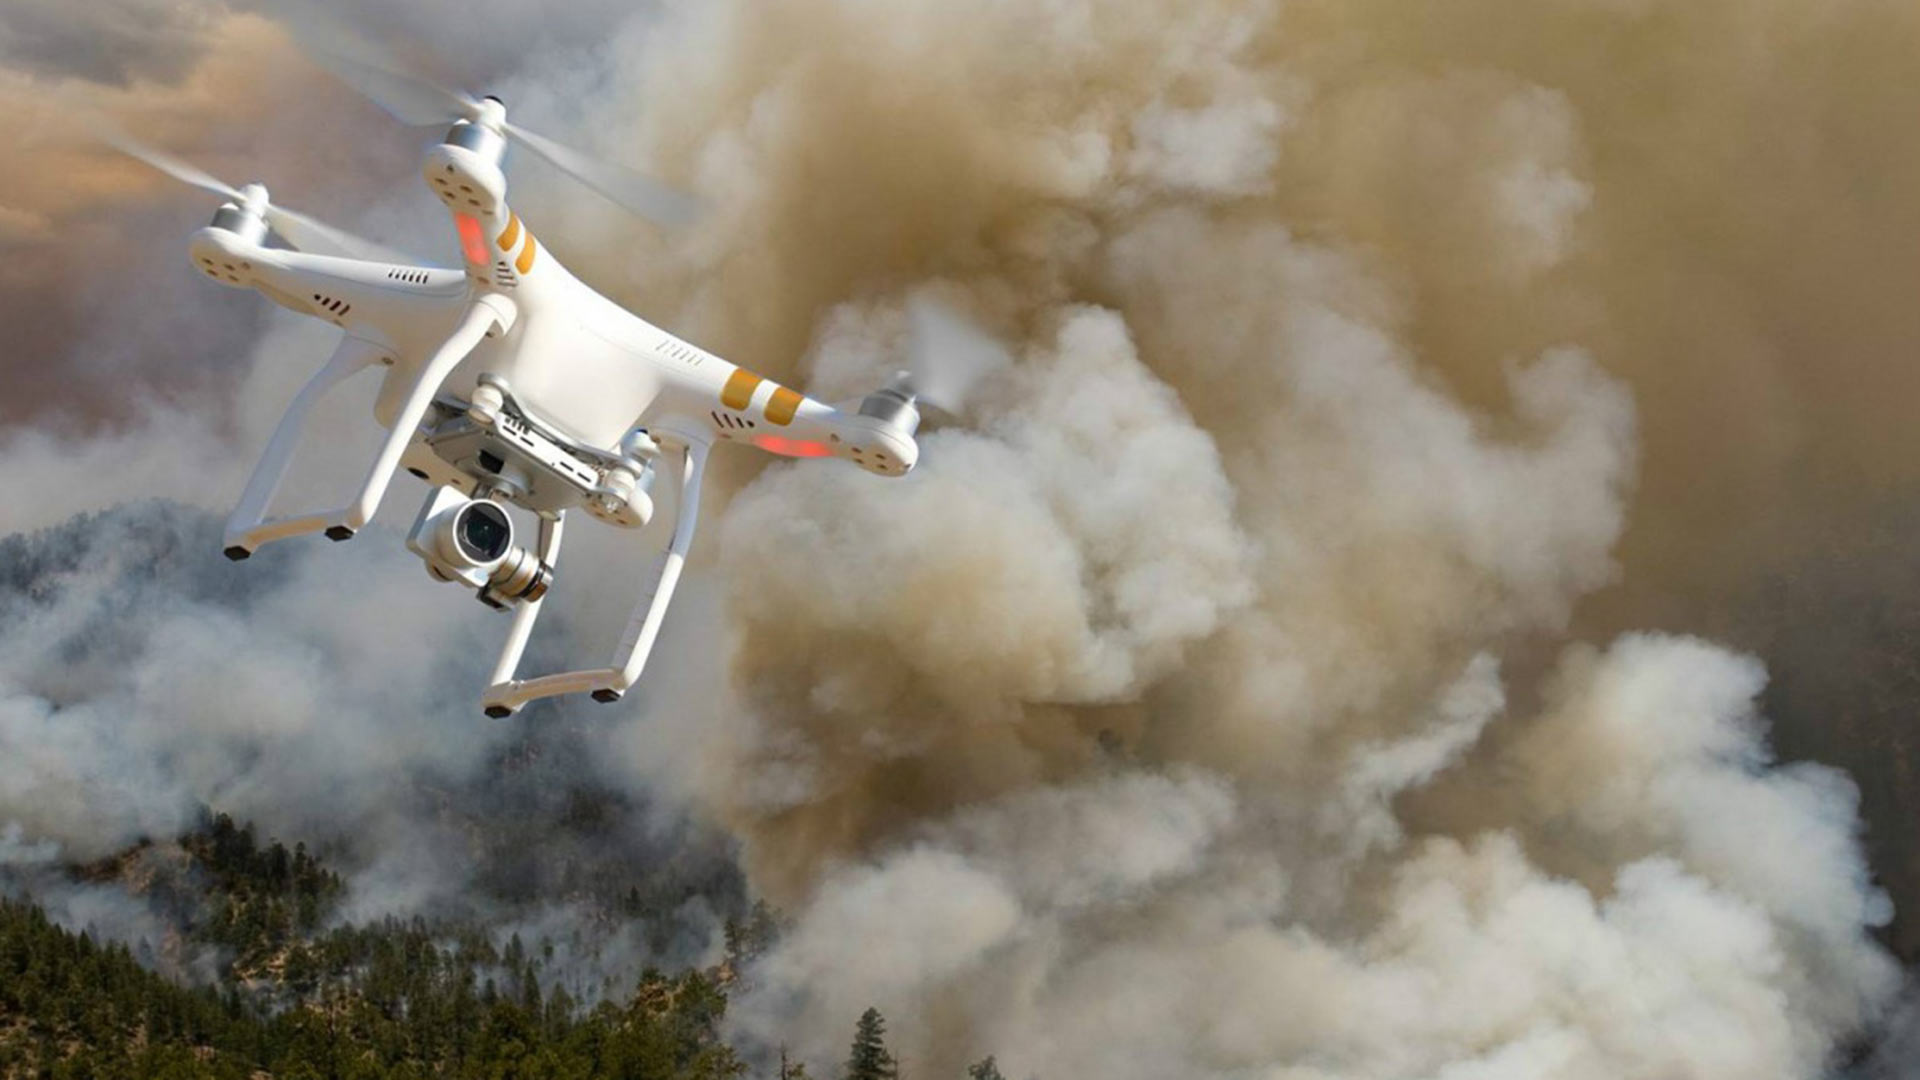 A drone flying near a wildfire.